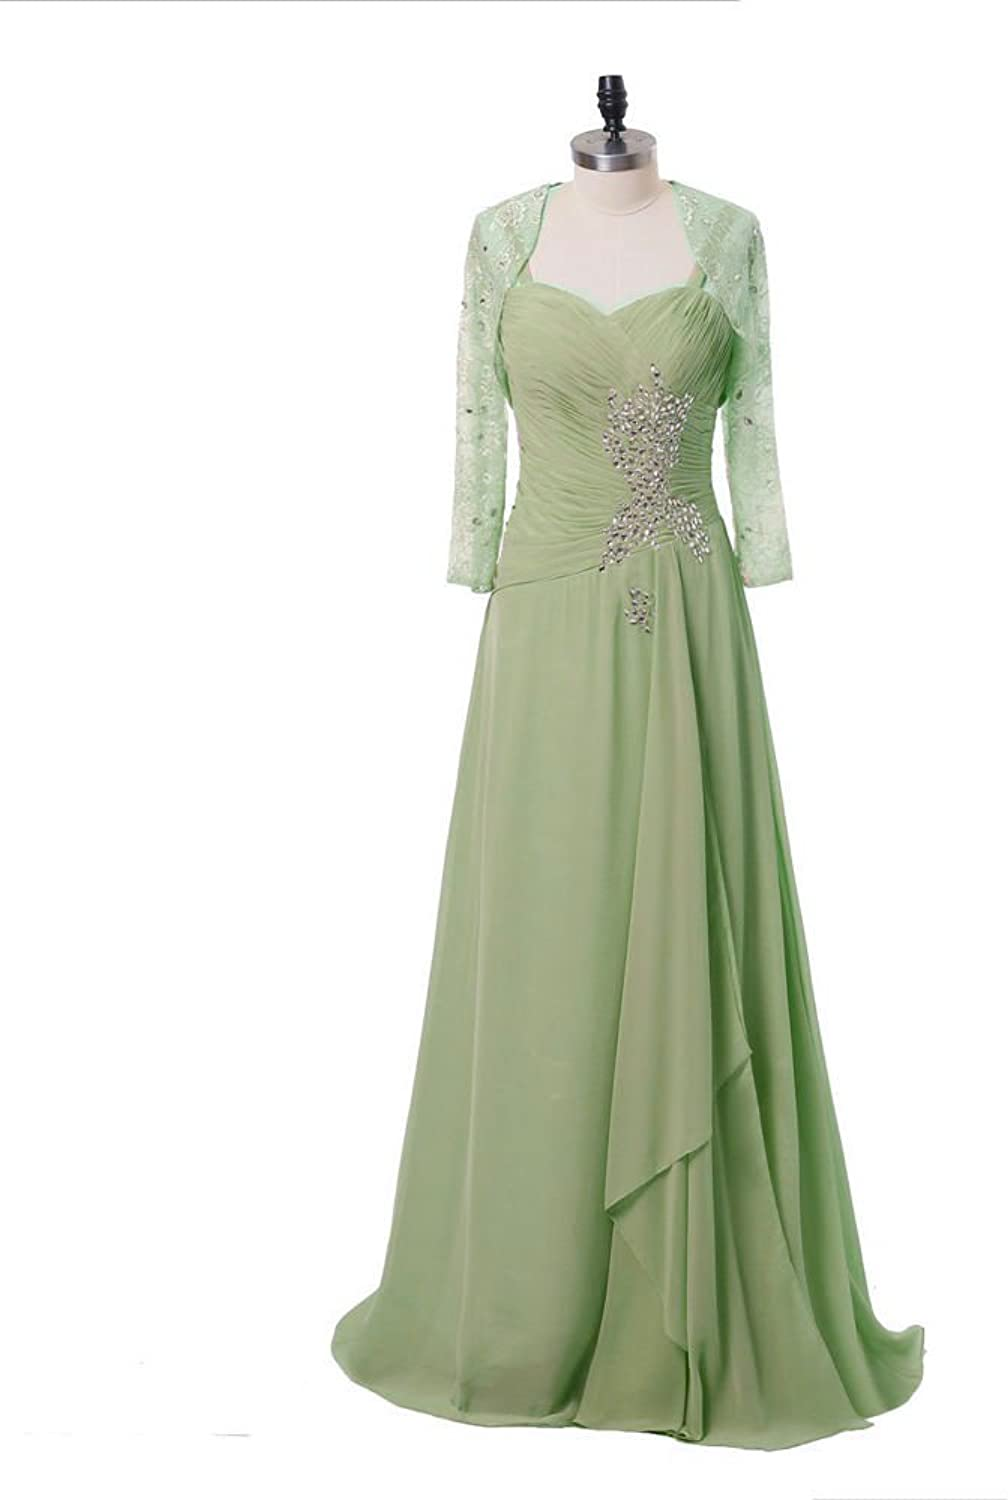 DINGZAN Long Mother of the Bride Dresses with Lace Long Sleeves Jacket